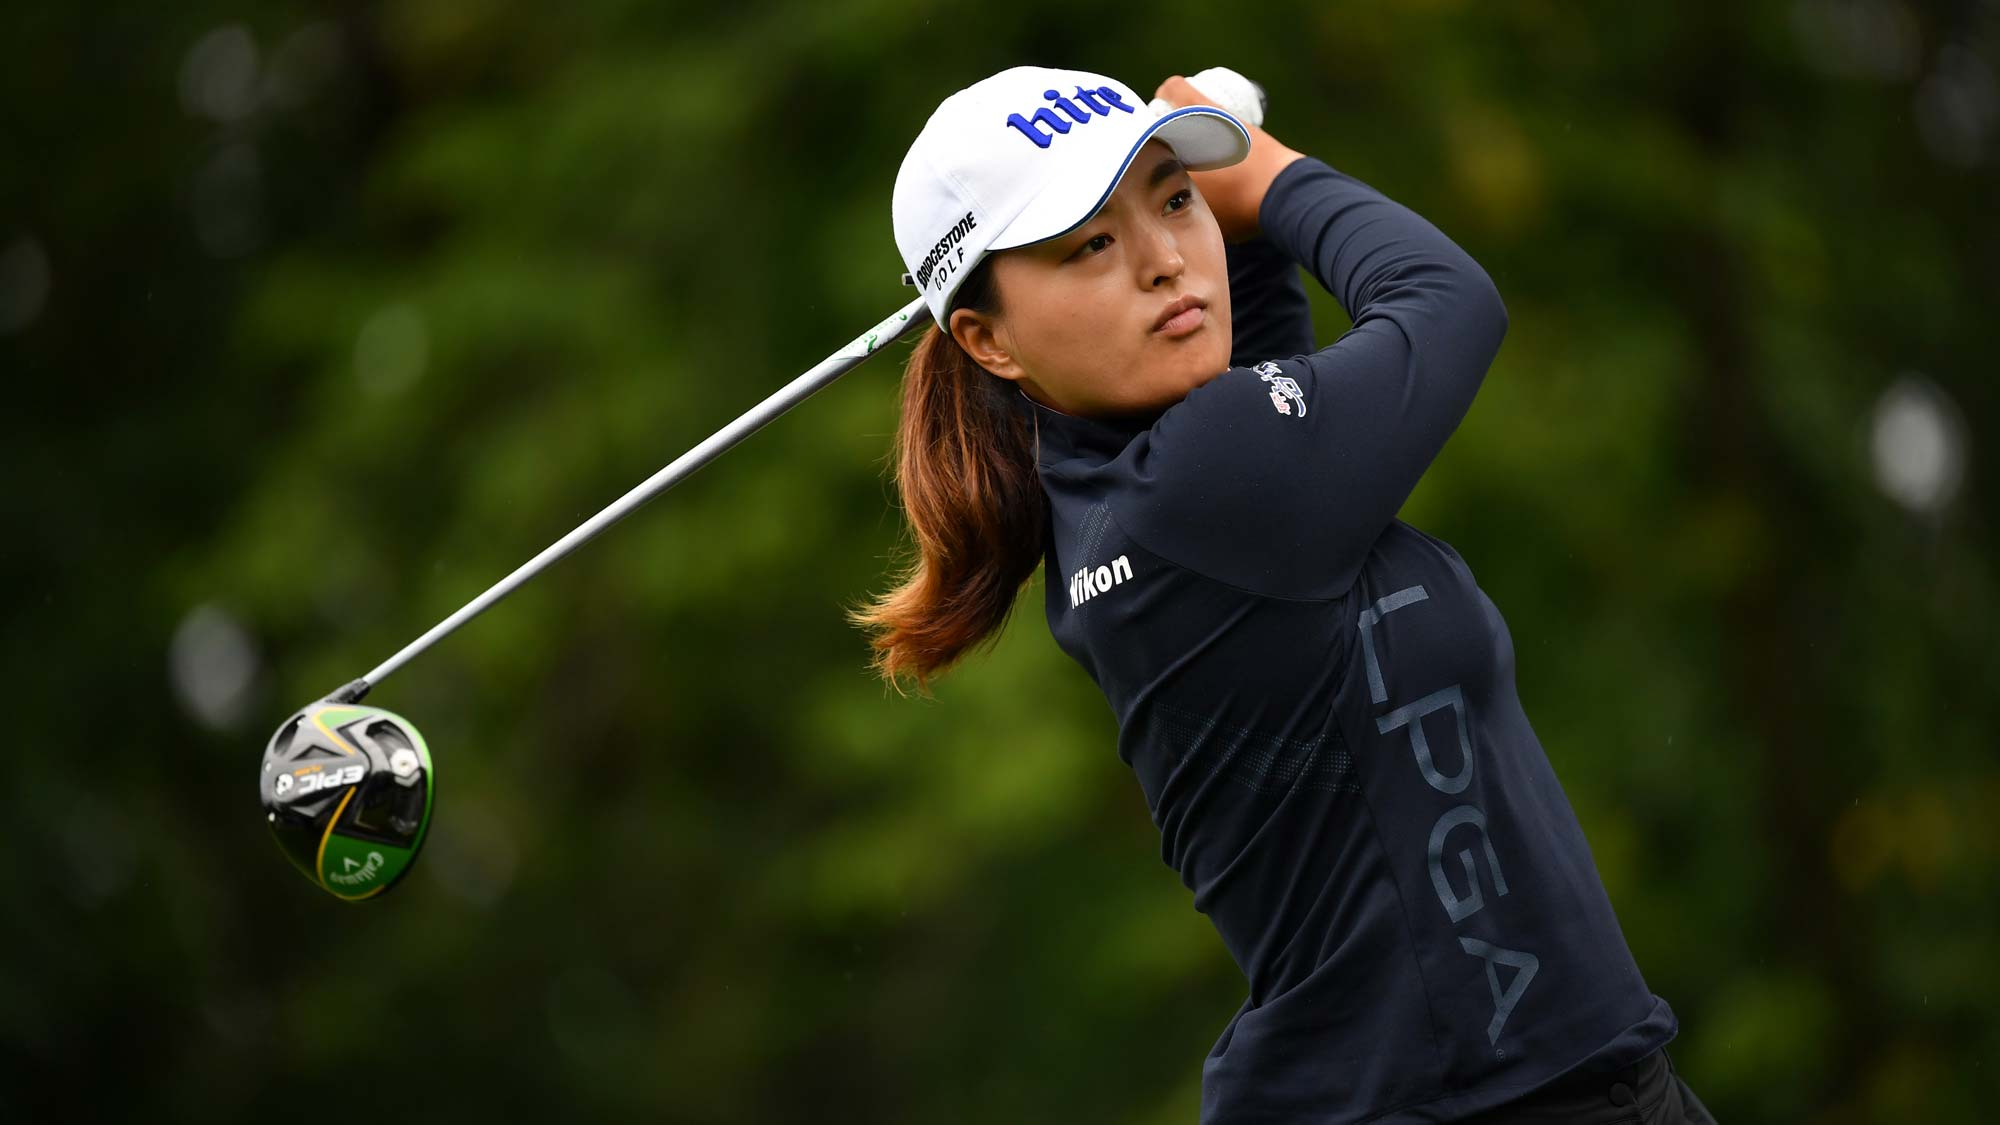 Jin Young Ko of South Korea in action on the 9th hole during day 4 of the Evian Championship